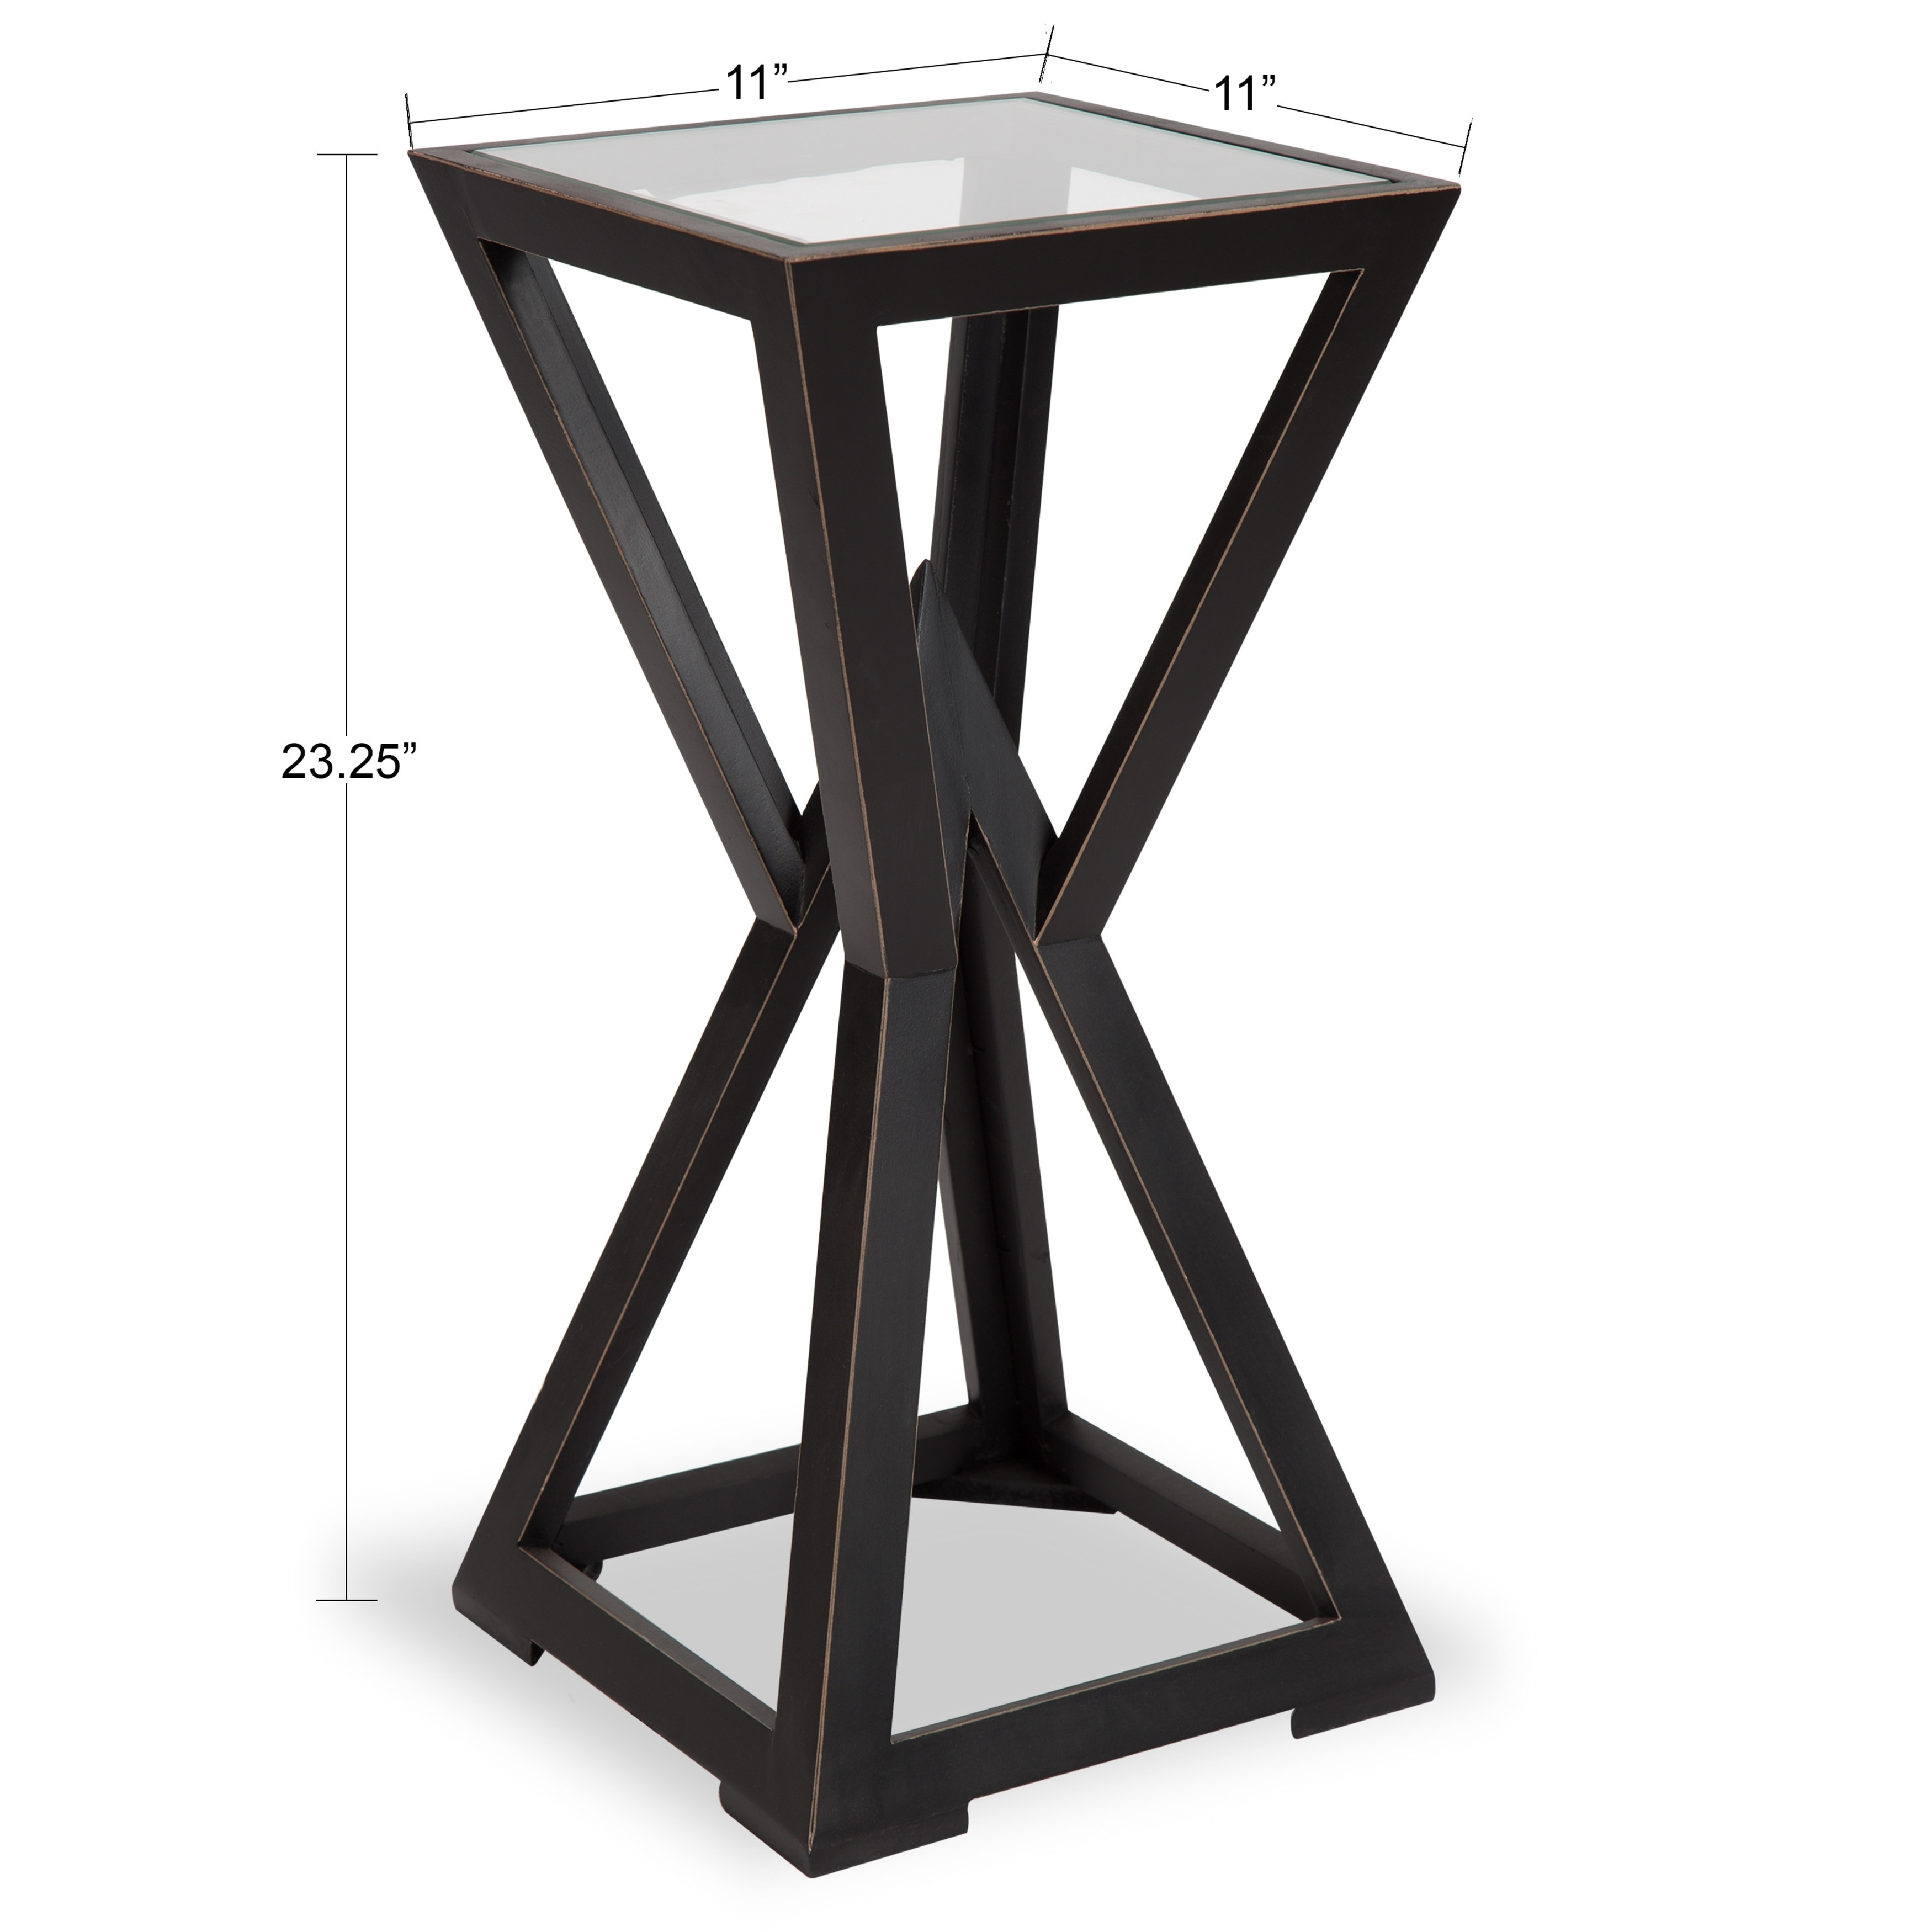 kate and laurel yogi small black wood side end table free tables sofa arm untreated furniture mirrored brown glass top coffee cool bedside lamps antique french leons dining sets